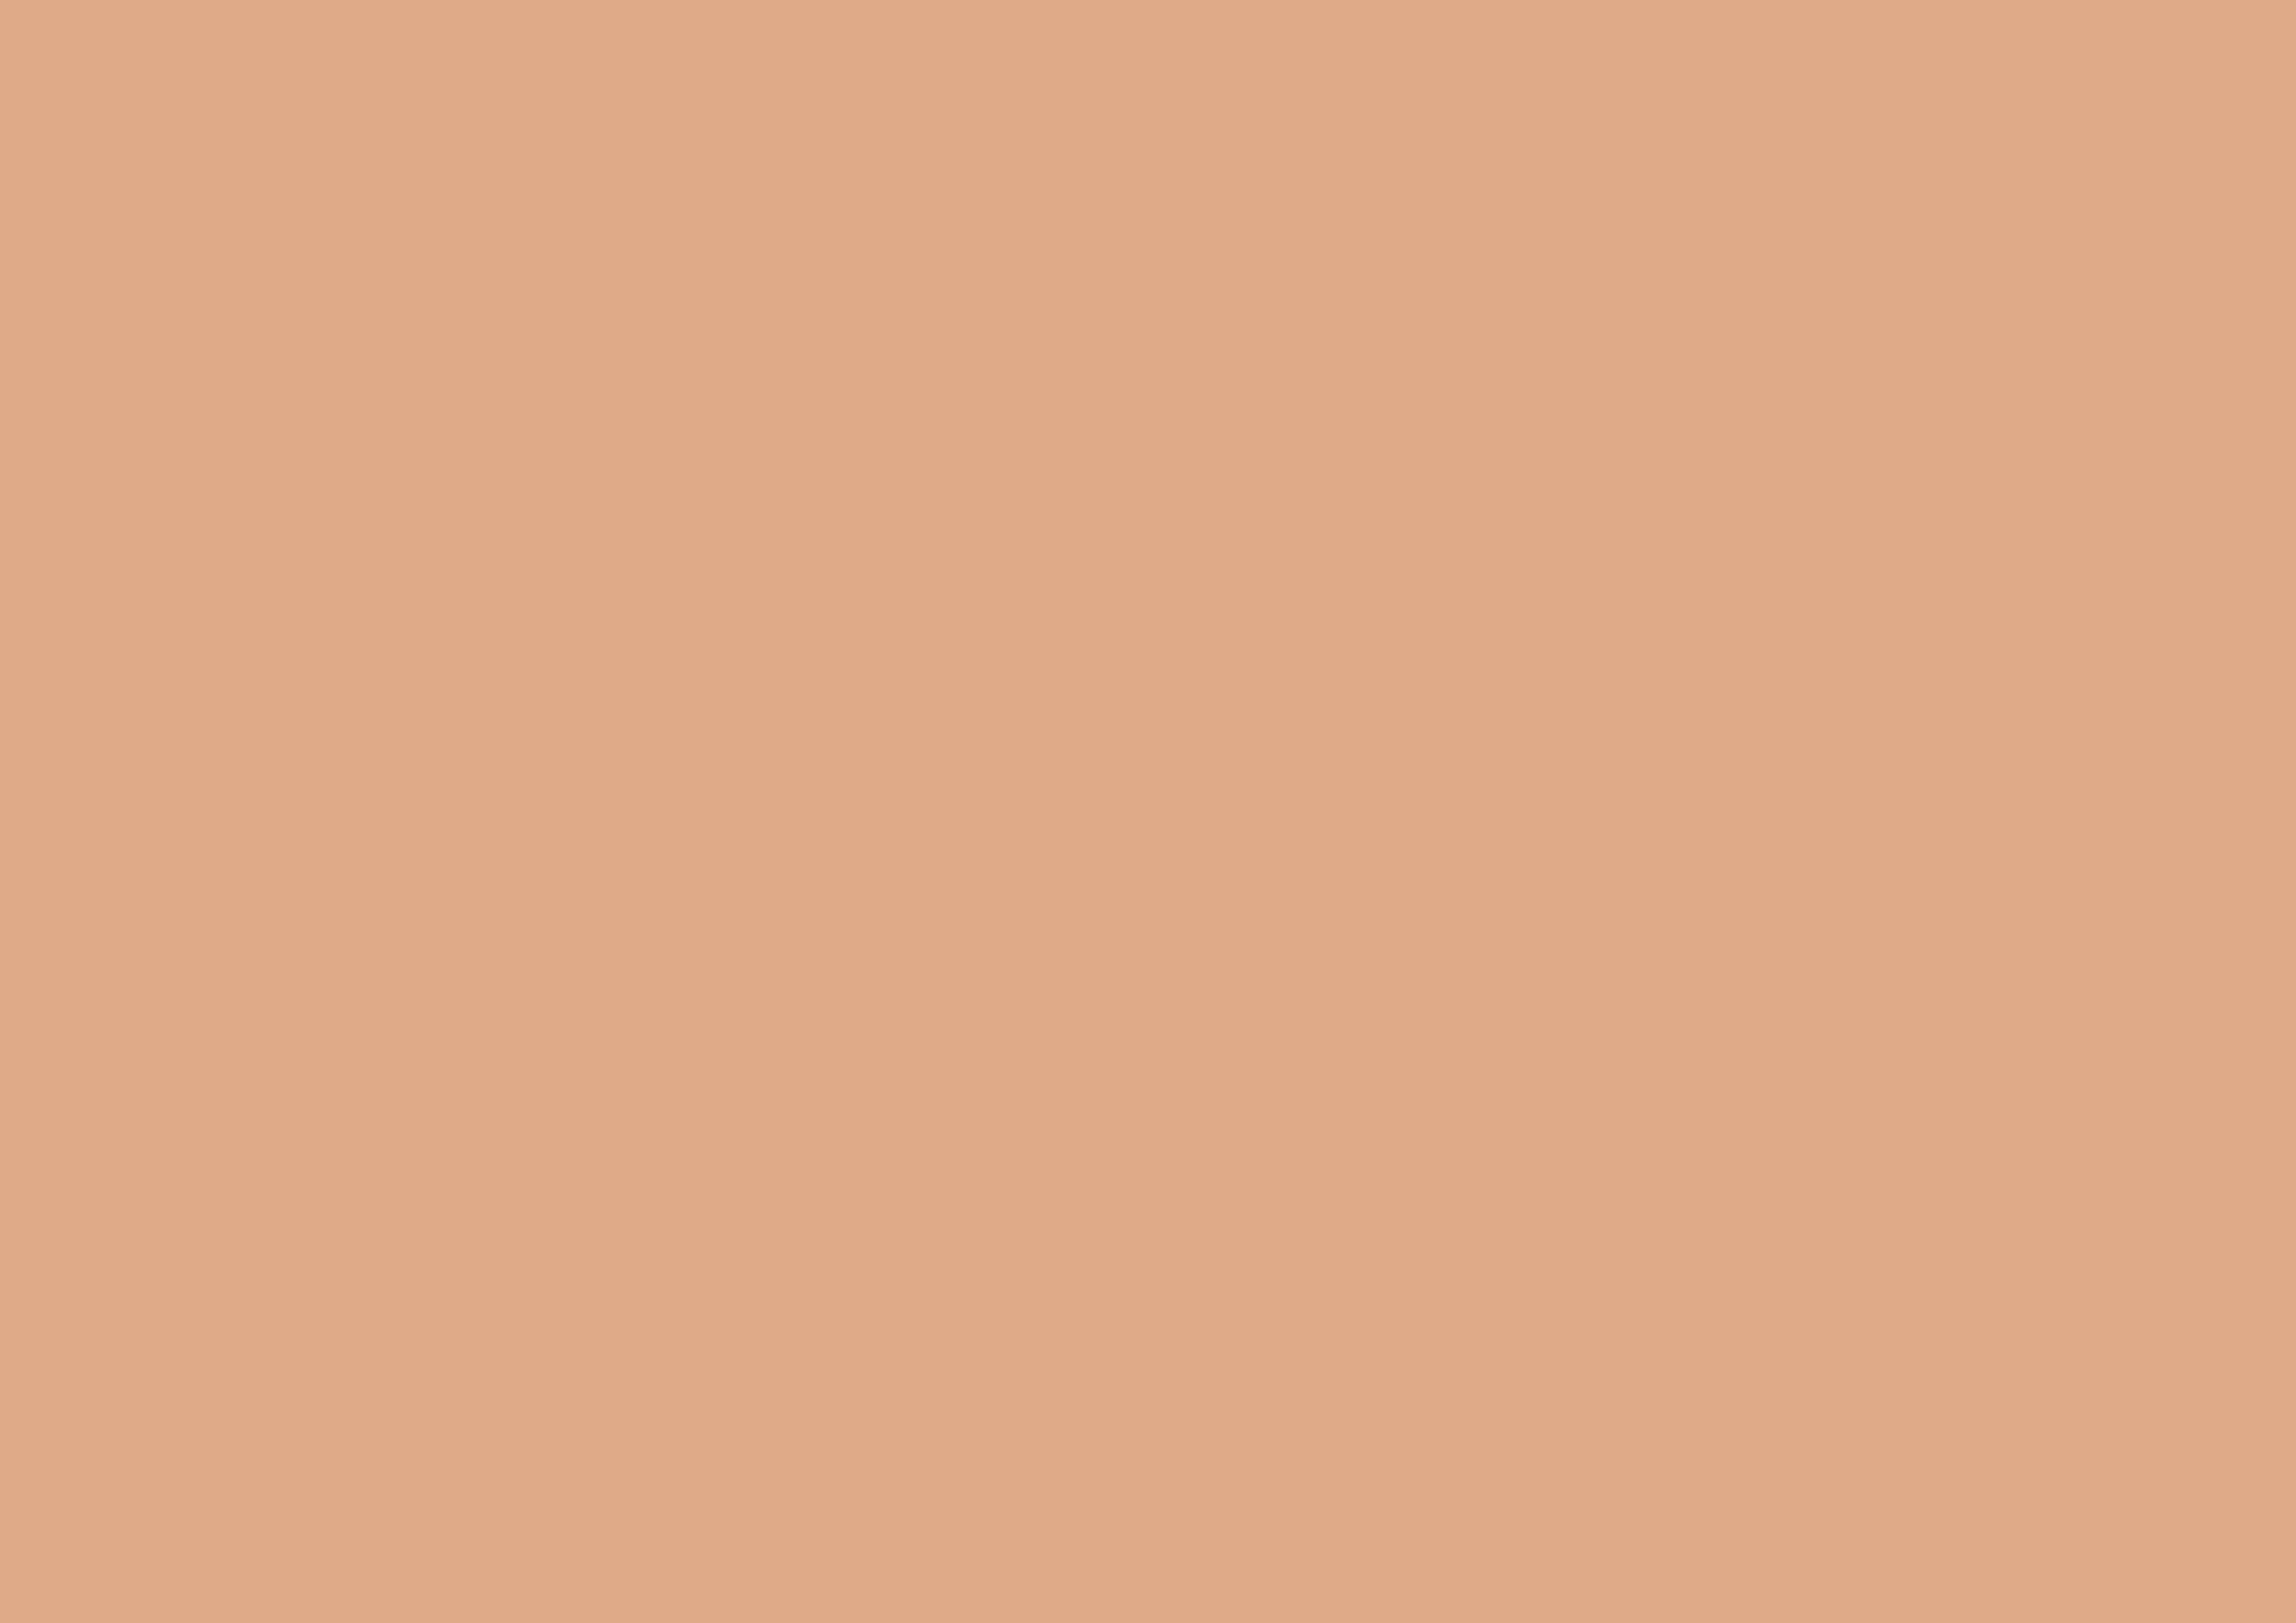 3508x2480 Tumbleweed Solid Color Background